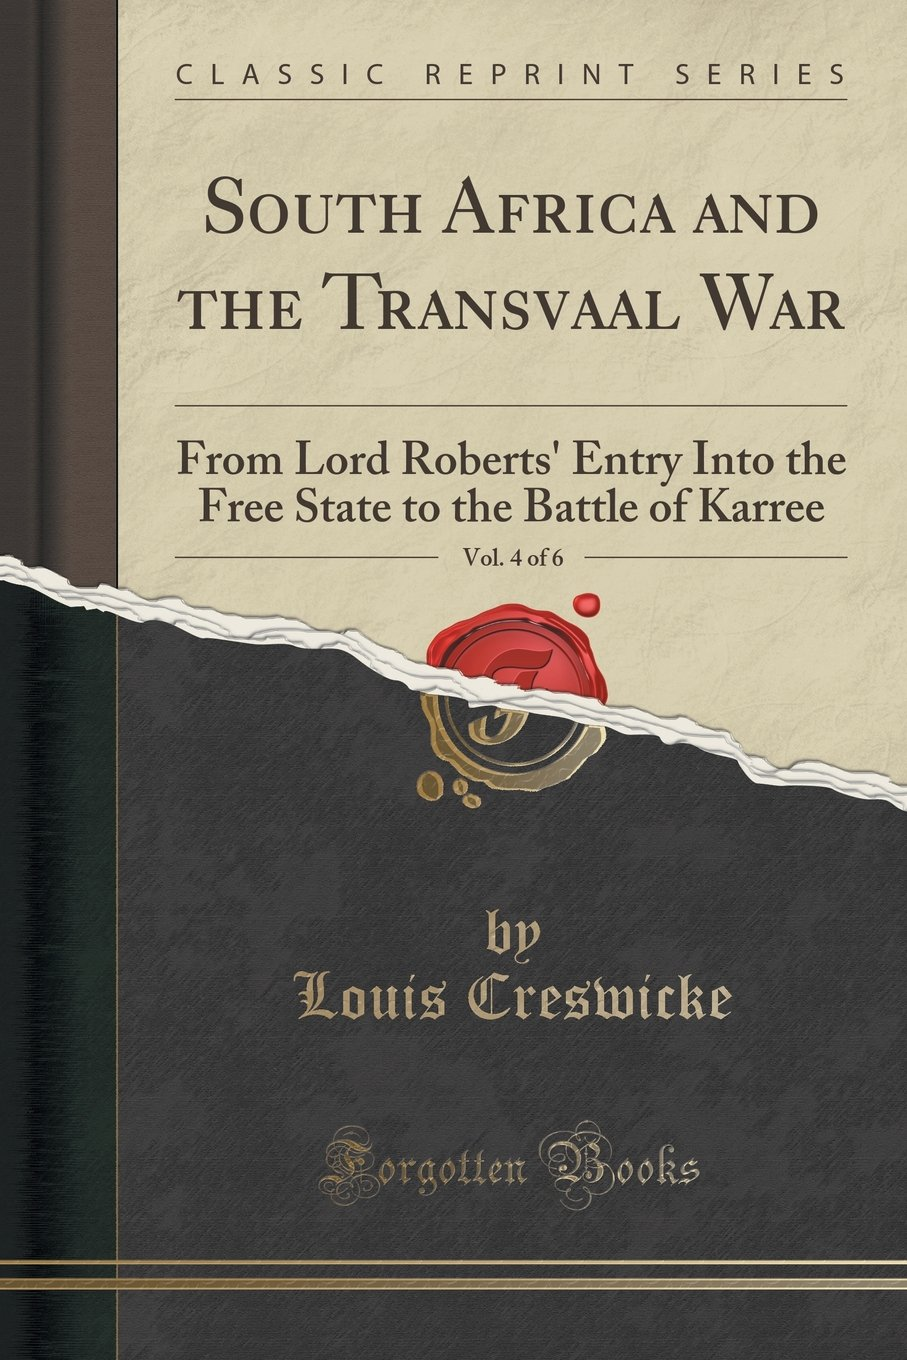 South Africa and the Transvaal War, Vol. 4 of 6: From Lord Roberts' Entry Into the Free State to the Battle of Karree (Classic Reprint) pdf epub